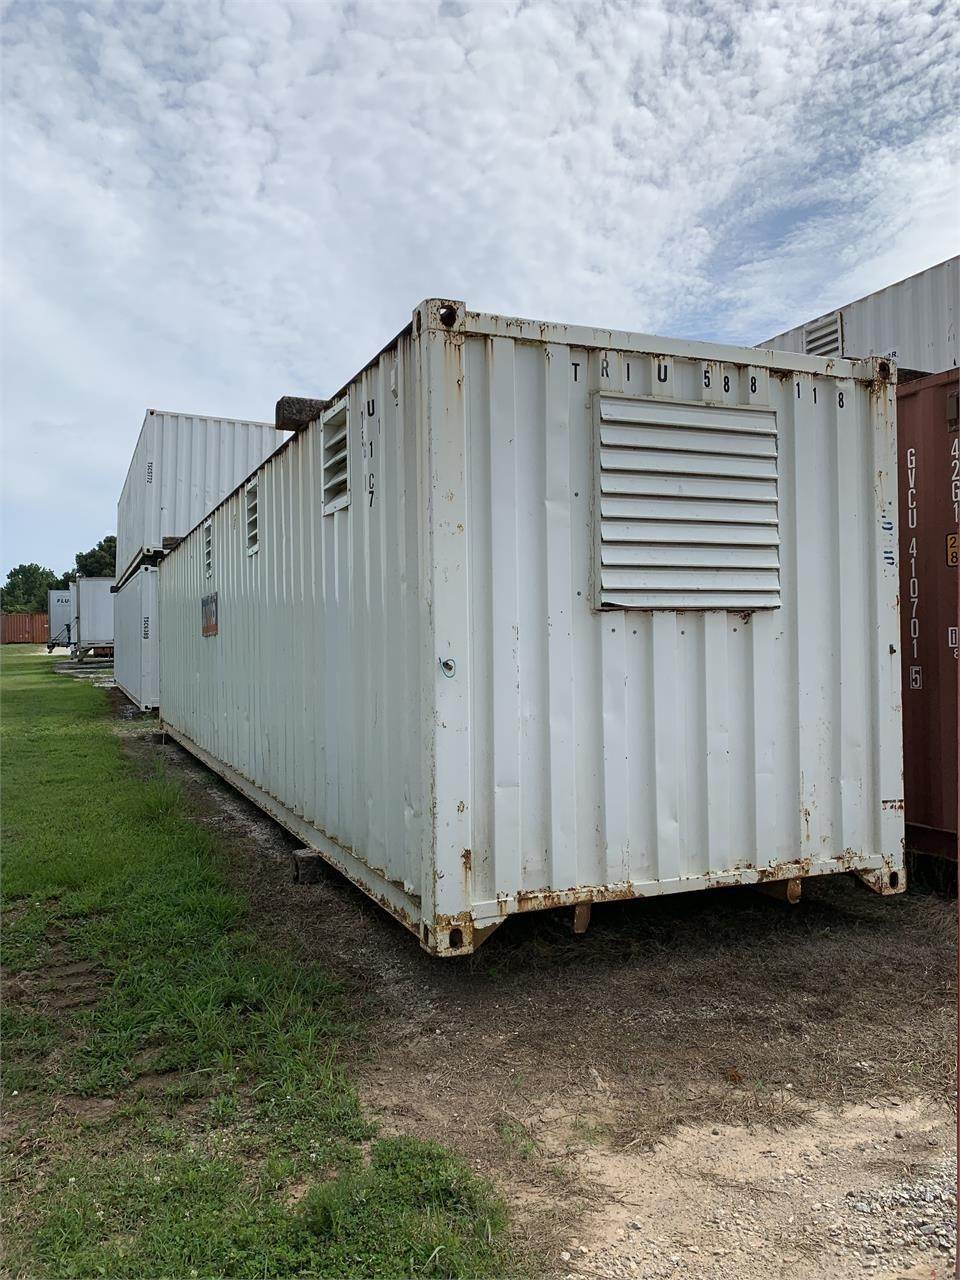 [Other] SHOP BUILT, Container Trailers, Trucks and Trailers